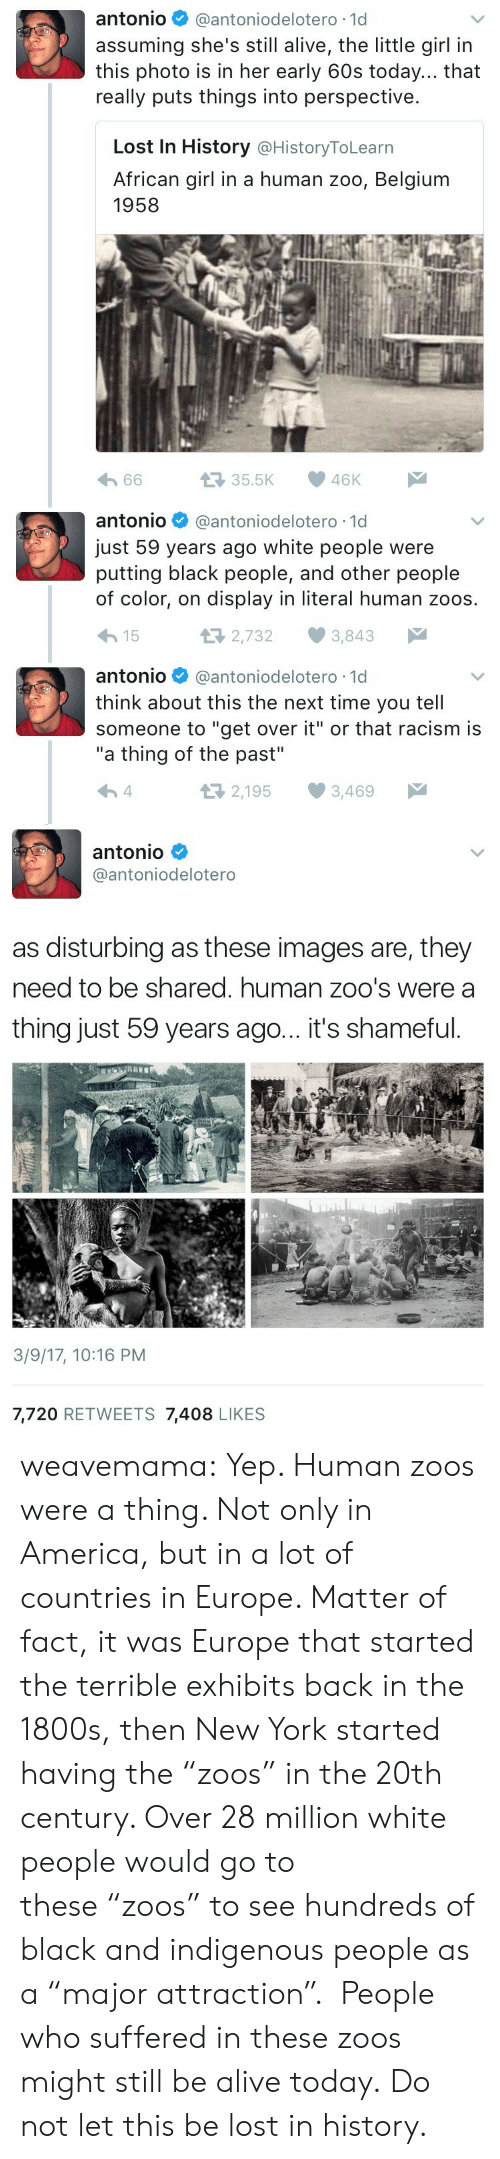 """zoos: antonio@antoniodelotero -1d  assuming she's still alive, the little girl in  this photo is in her early 60s today... that  really puts things into perspective.  Lost In History @HistoryToLearn  African girl in a human zoo, Belgiunm  1958  er  わ66  35.5K 46K   antonio@antoniodelotero -1d  just 59 years ago white people were  putting black people, and other people  of color, on display in literal human zoos.  15  2,7323,843  antonio @antoniodelotero-1d  think about this the next time you tell  someone to """"get over it"""" or that racism is  """"a thing of the past""""  2,195 3,469   antonio  @antoniodelotero  as disturbing as these images are, they  need to be shared. human zoo's were a  thing just 59 years ago... it's shameful.  3/9/17, 10:16 PM  7,720 RETWEETS 7,408 LIKES weavemama:  Yep. Human zoos were a thing. Not only in America, but in a lot of countries in Europe. Matter of fact, it was Europe that started the terrible exhibits back in the 1800s, then New York started having the""""zoos"""" in the 20th century. Over 28 million white people would go to these""""zoos"""" to see hundreds of black and indigenous people as a""""major attraction"""". People who suffered in these zoos might still be alive today.  Do not let this be lost in history."""